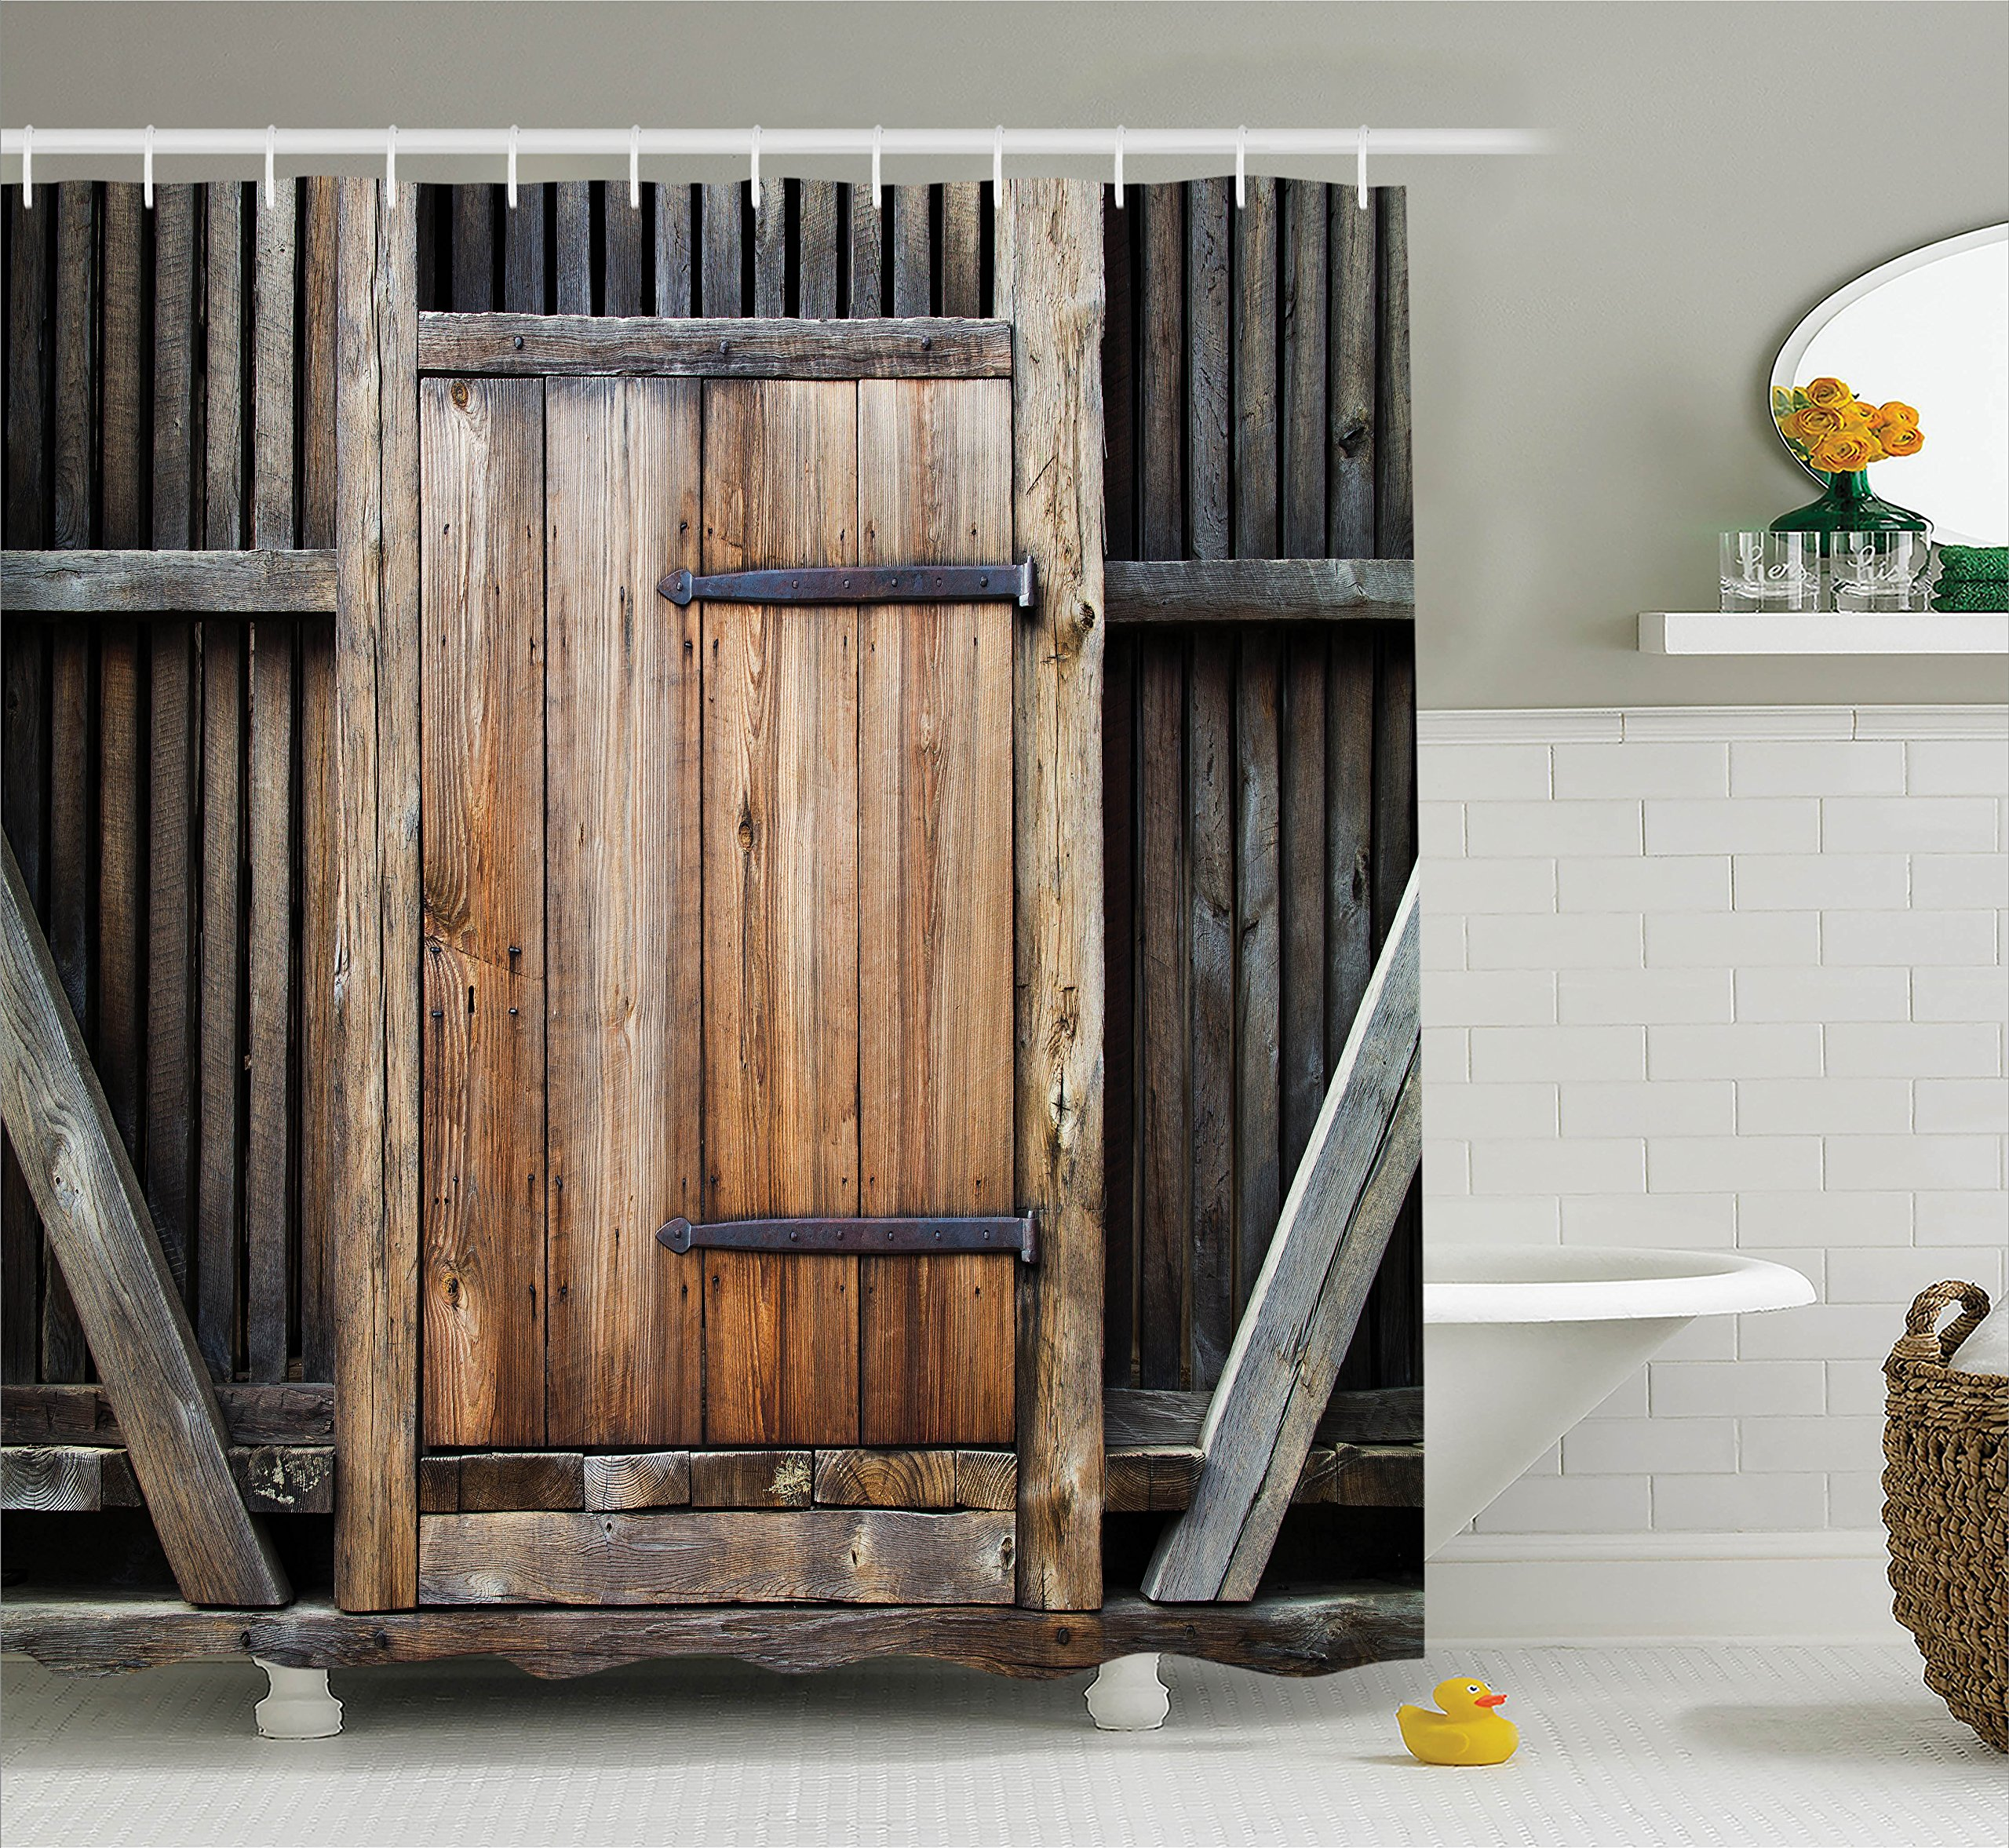 Ambesonne Barn Door Shower Curtain Rustic Decor by, Rustic Antique Wooden Door Exterior Facades Rural Oak Timber Weathered Picture, Fabric Bathroom Set with Hooks, 84 Inches Long, Brown Orange